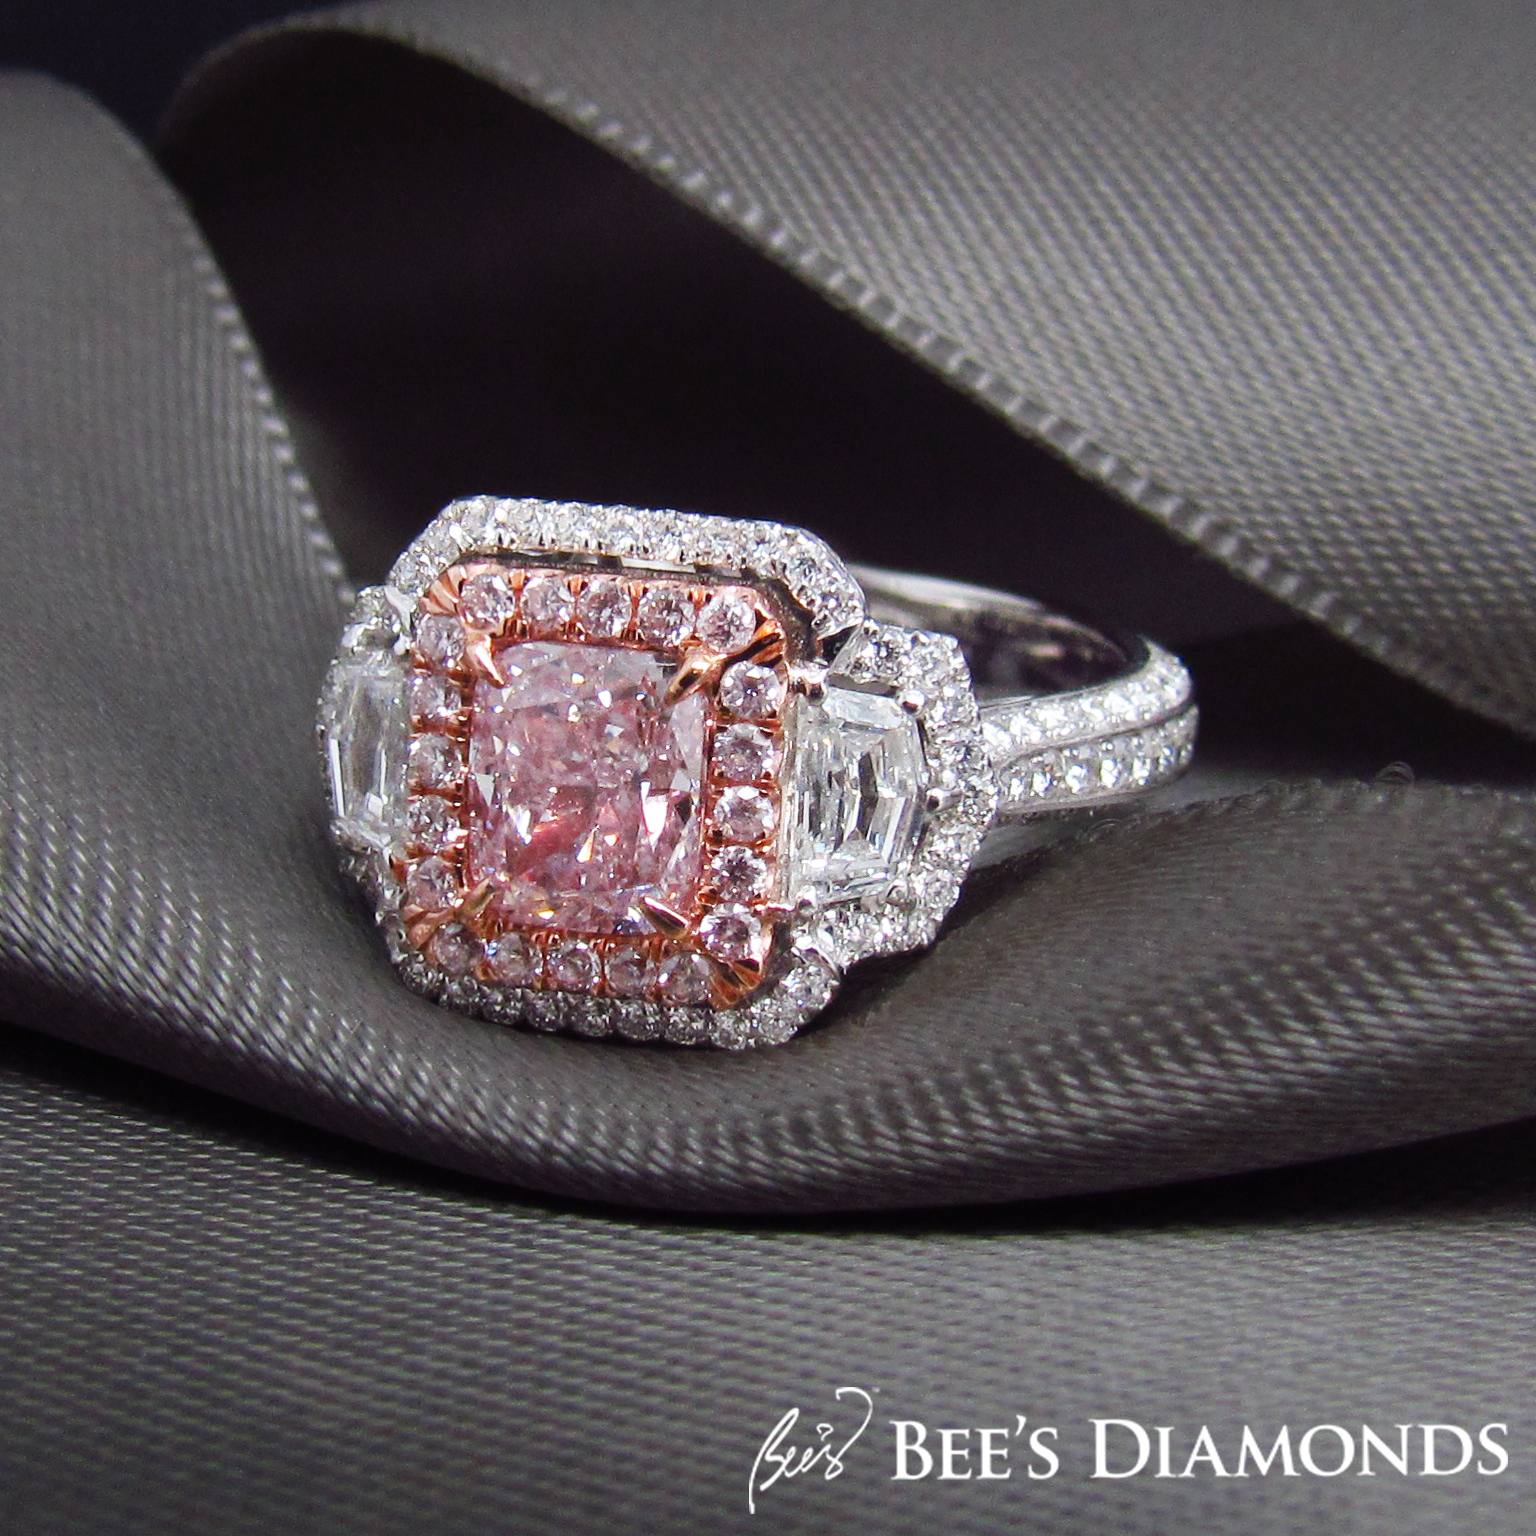 Fancy intense pink diamond engagement ring | Bee's Diamonds